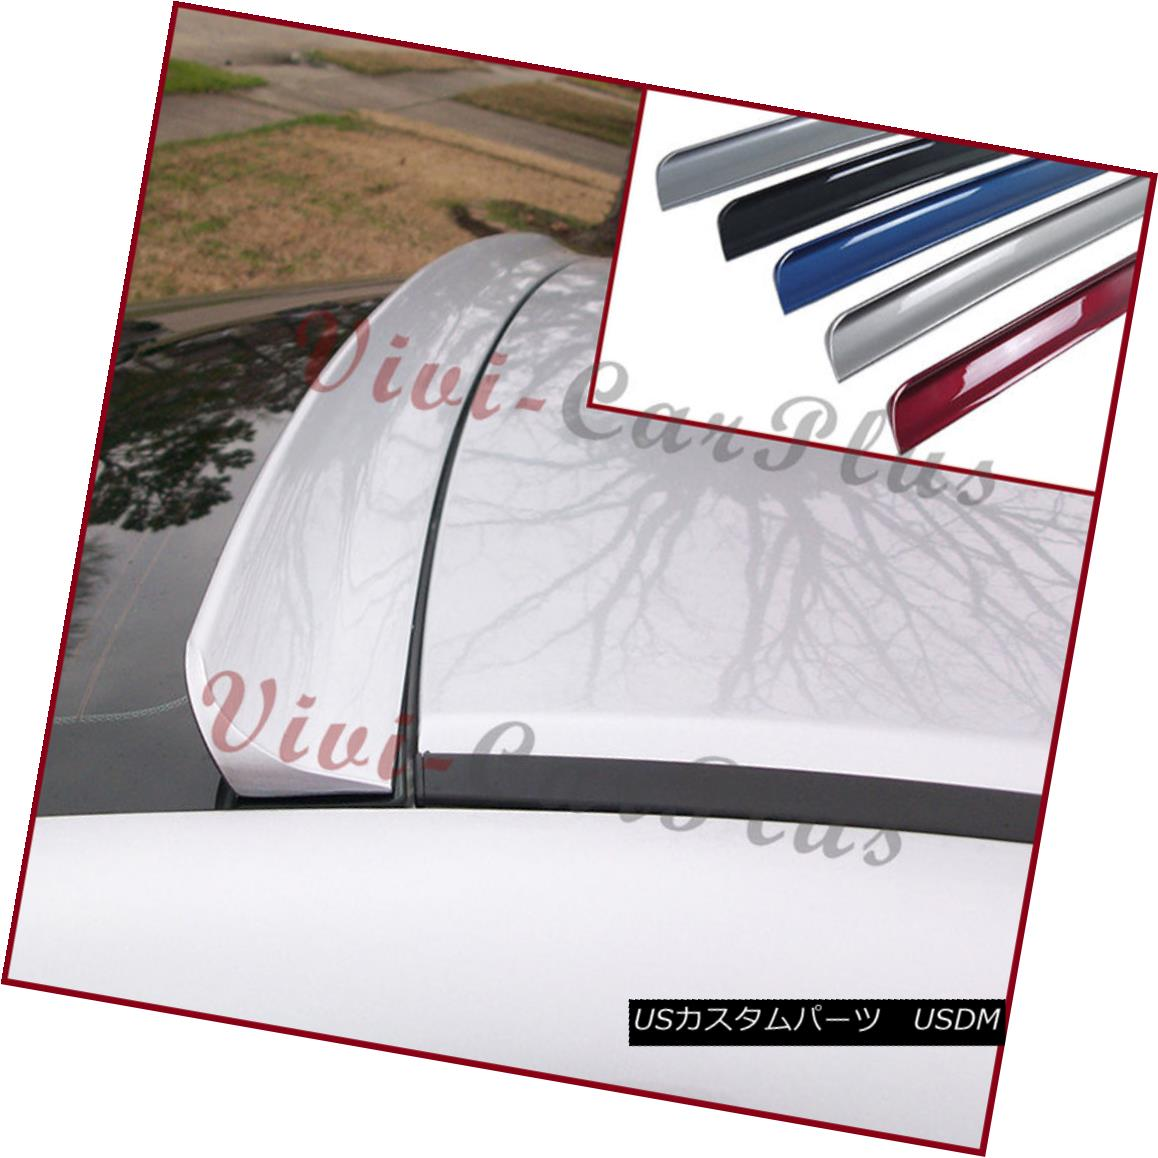 エアロパーツ PICK COLOR B Type PU Rear Roof Spoiler For 98-02 BENZ W208 CLK-Coupe CLK320 Wing ピック・カラーBタイプPUリア・ルーフ・スポイラー98-02 BENZ W208 CLK-Coupe CLK320ウィング